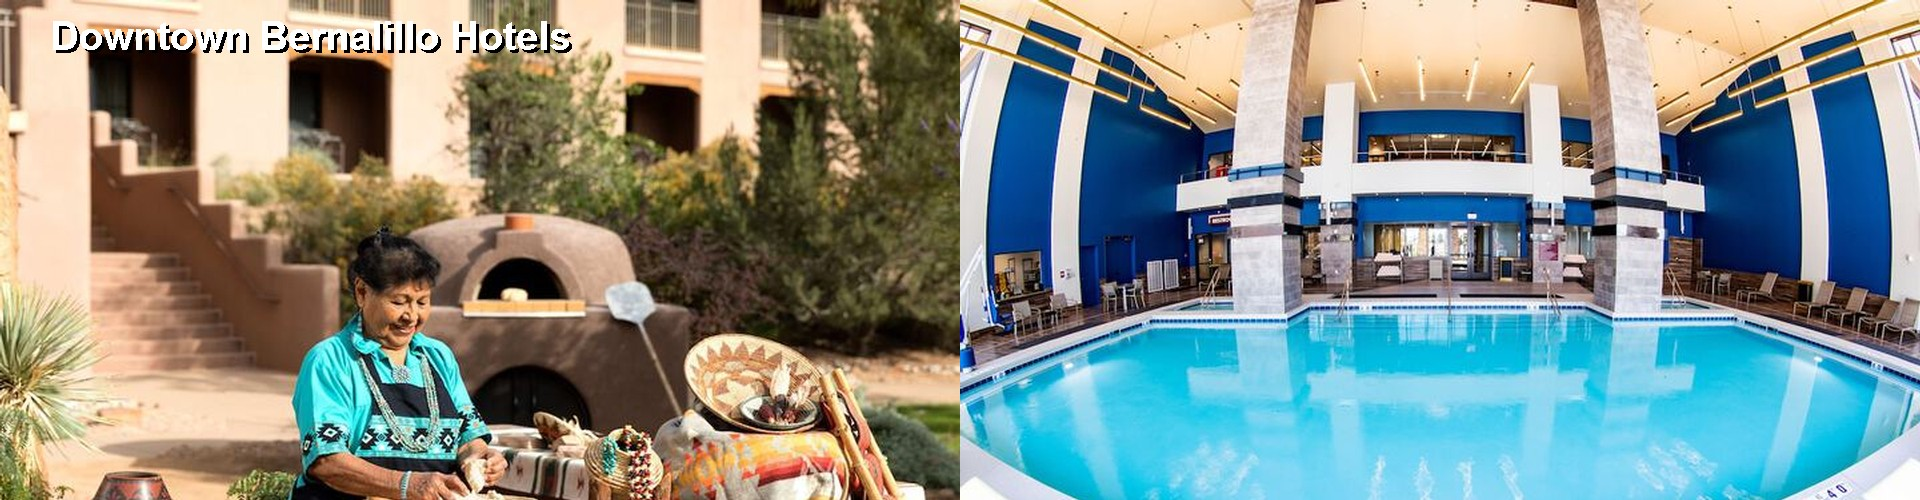 5 Best Hotels near Downtown Bernalillo